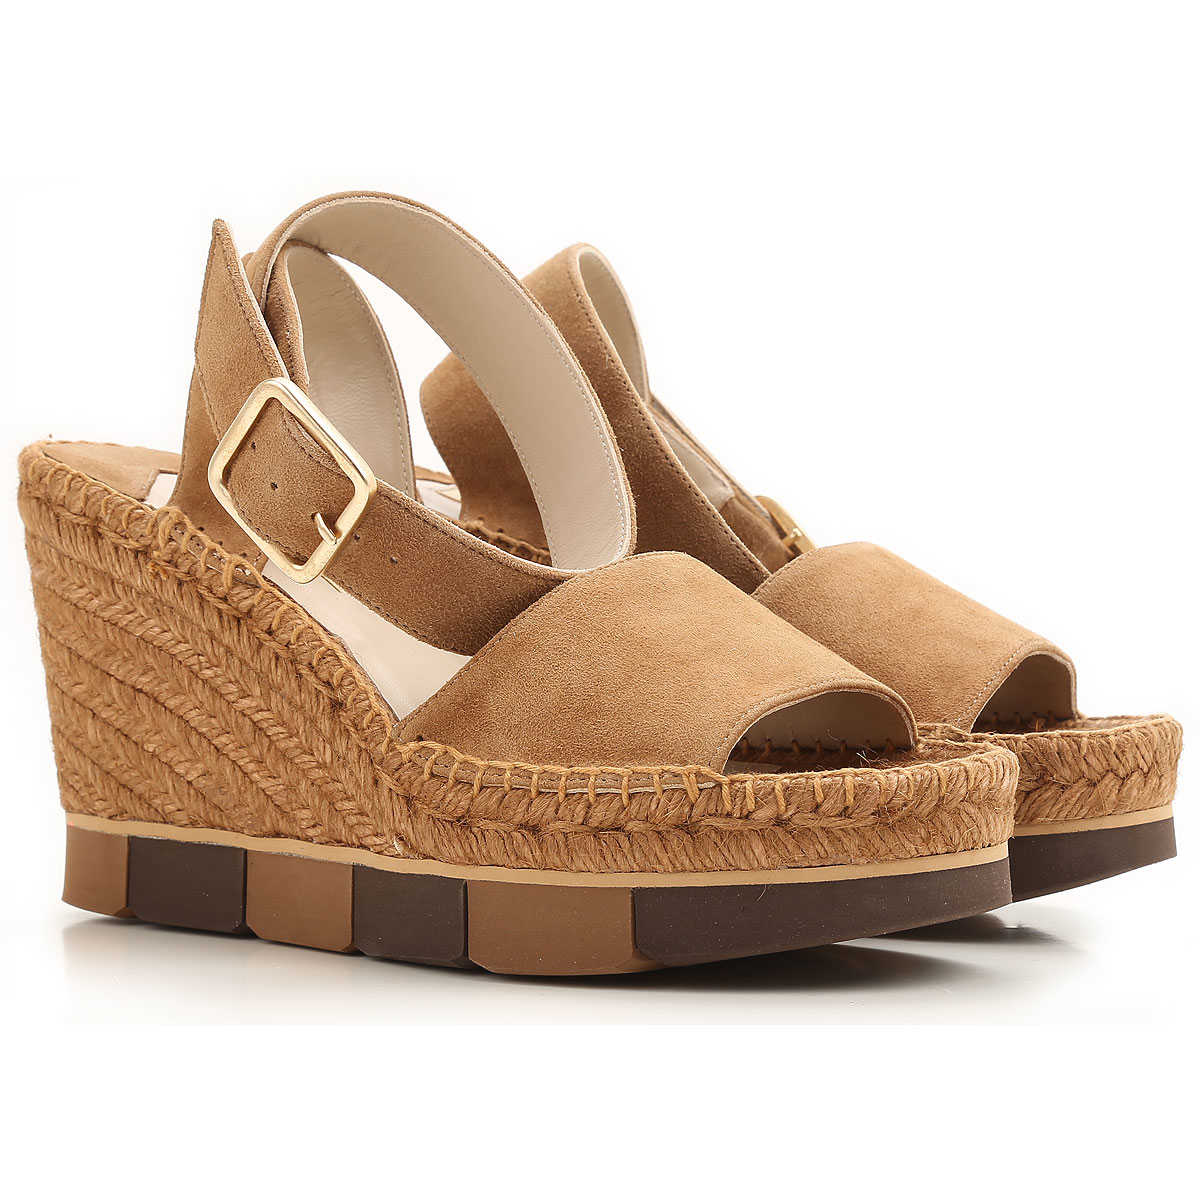 Paloma Barcelo Sandals for Women On Sale in Outlet